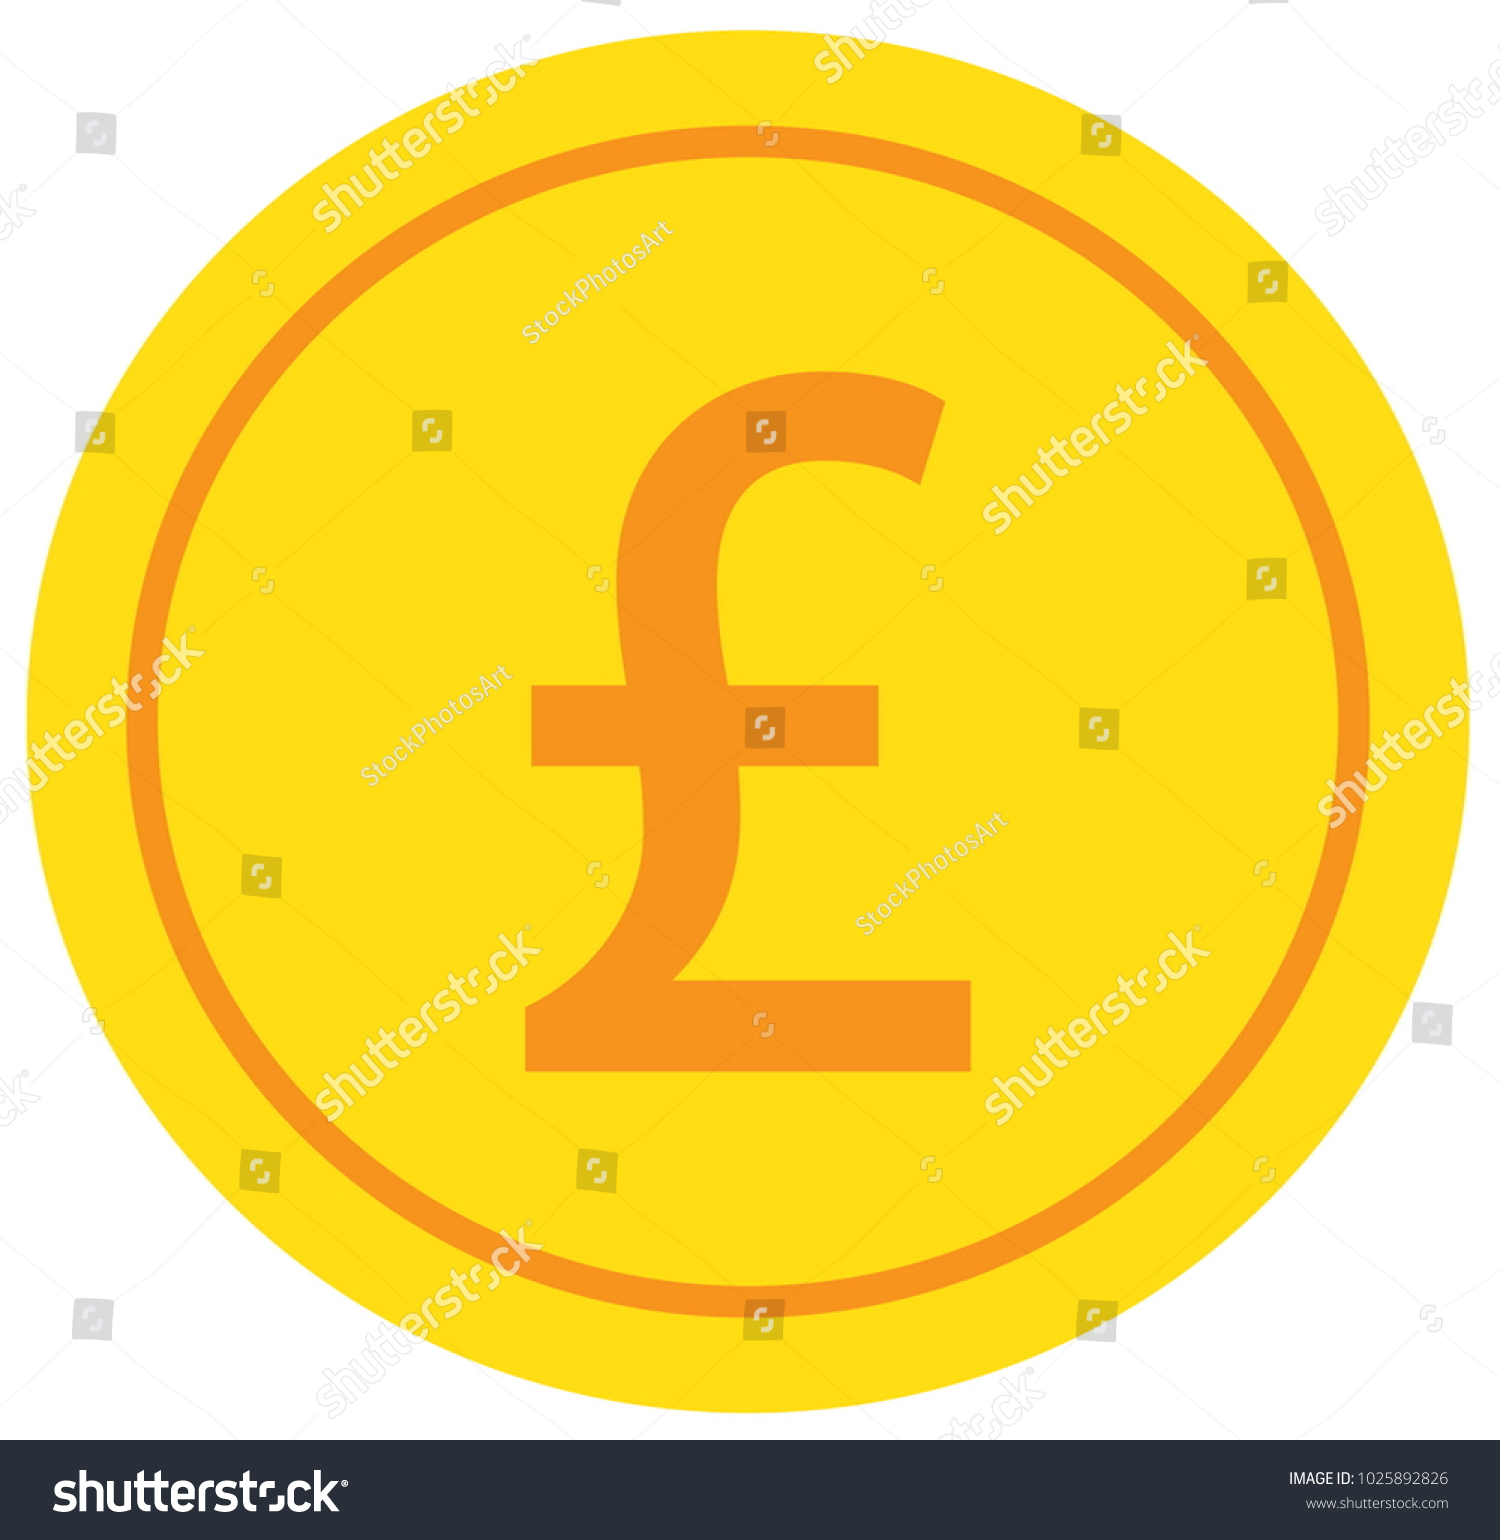 Pound Pound Sterling Currency Icon Logo Stock Vector Royalty Free